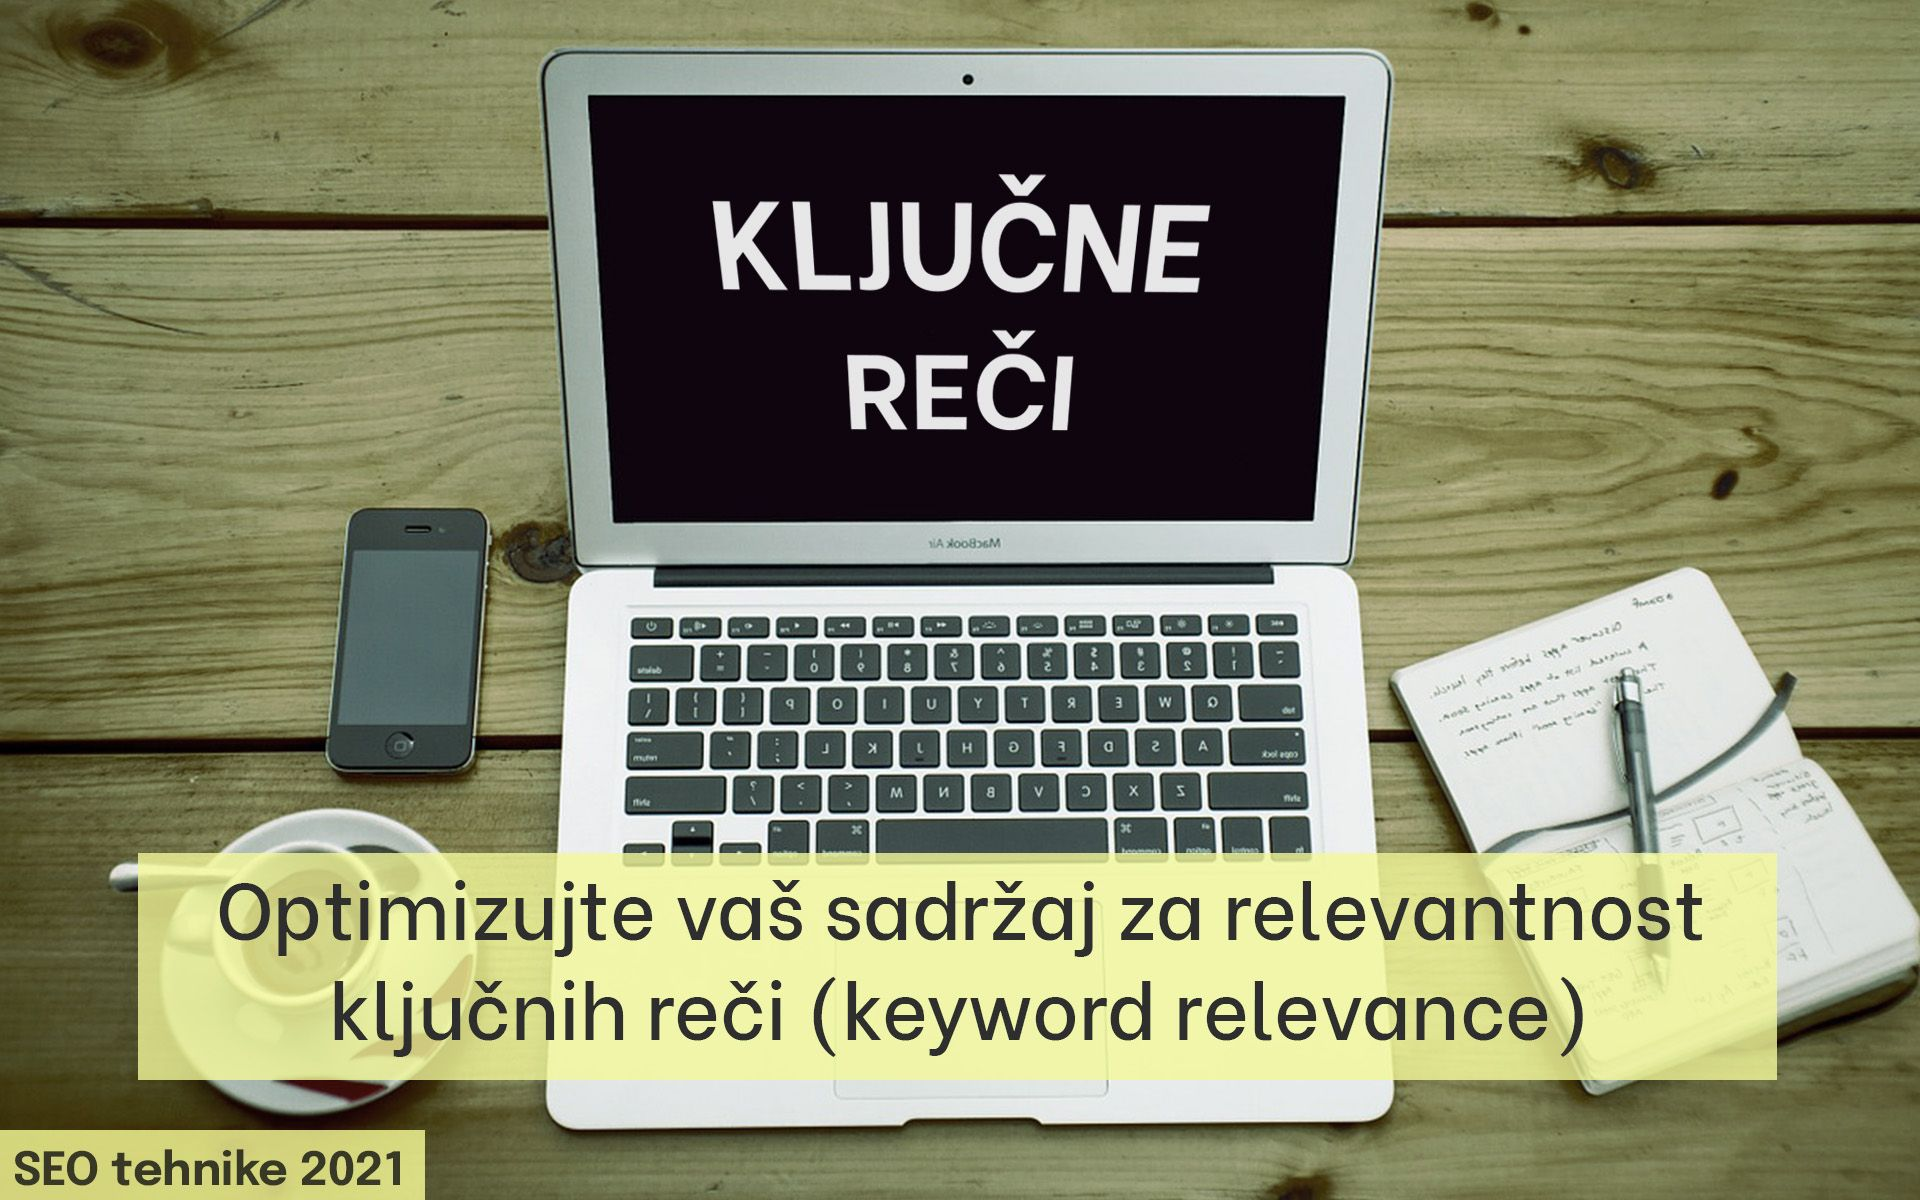 SEO tehnike 2021 optimizujte za keyword relevance